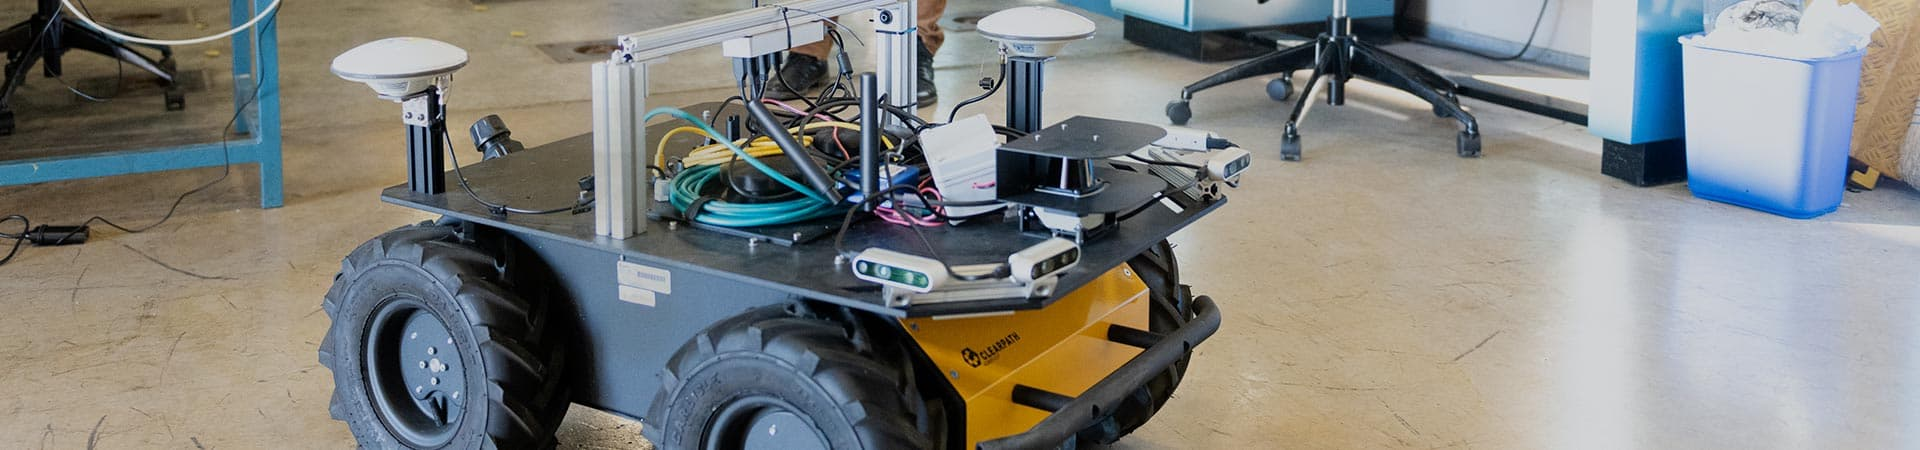 Robotic with four wheels and sensors in a lab